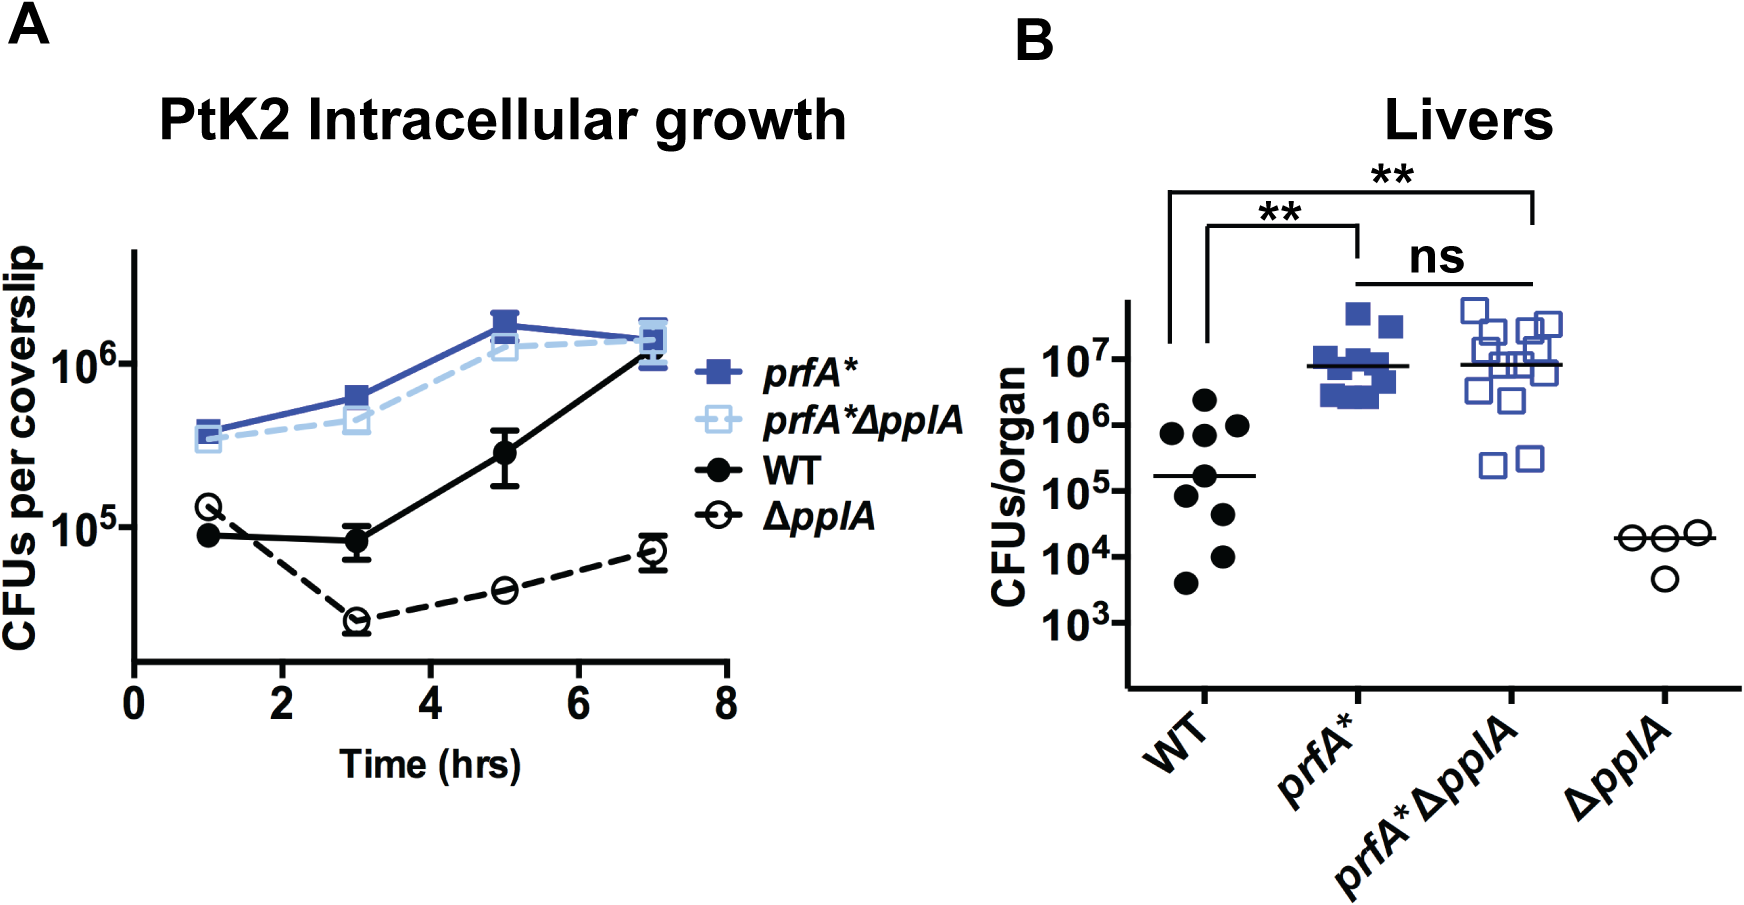 Constitutive activation of <i>prfA</i>* rescues virulence defects associated with loss of pPplA pheromone.